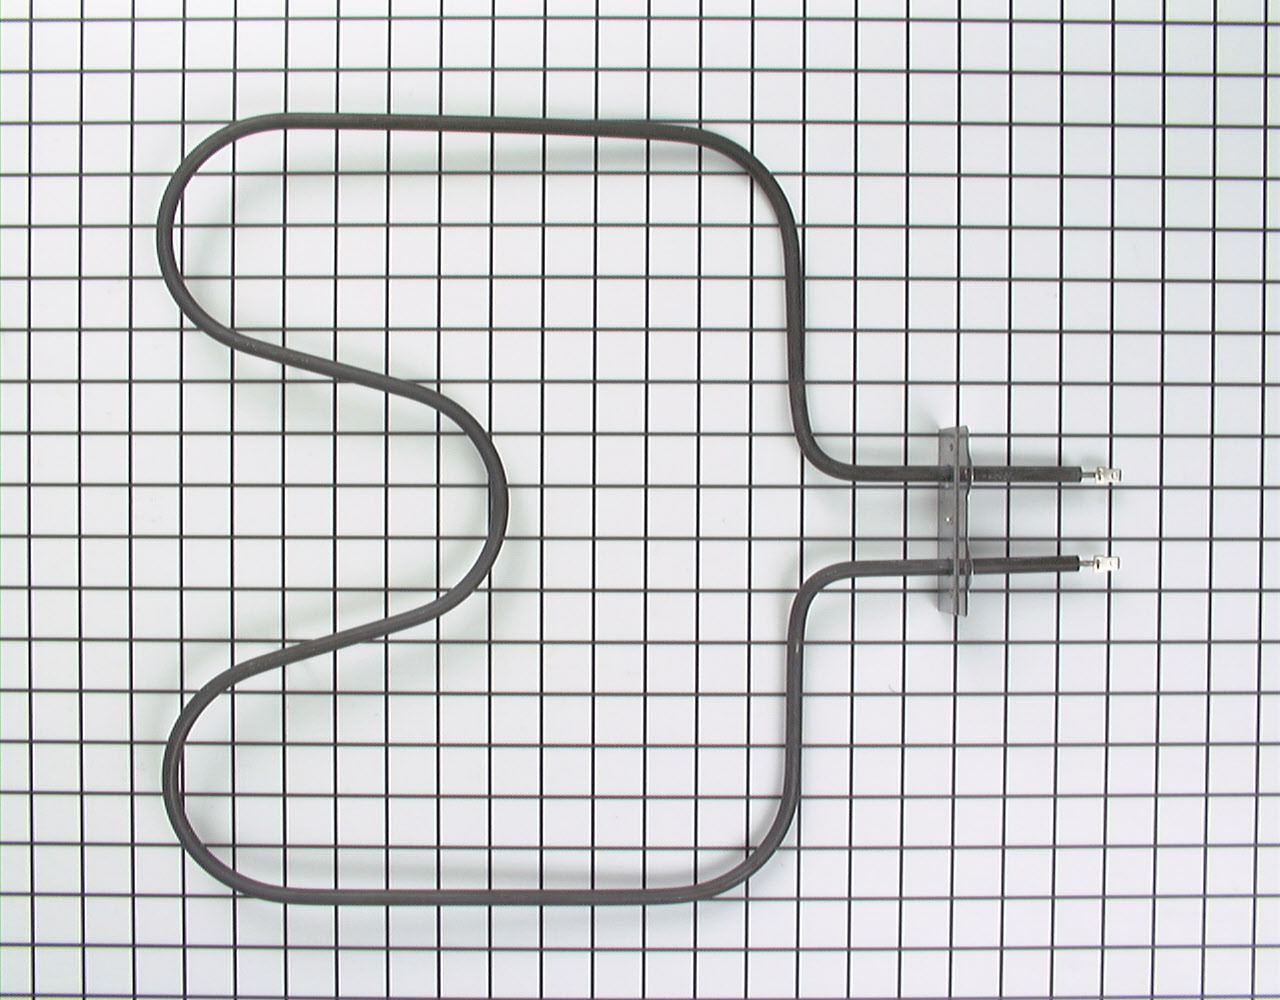 KitchenAid Range/Stove/Oven Part # WP661416 - Bake Element